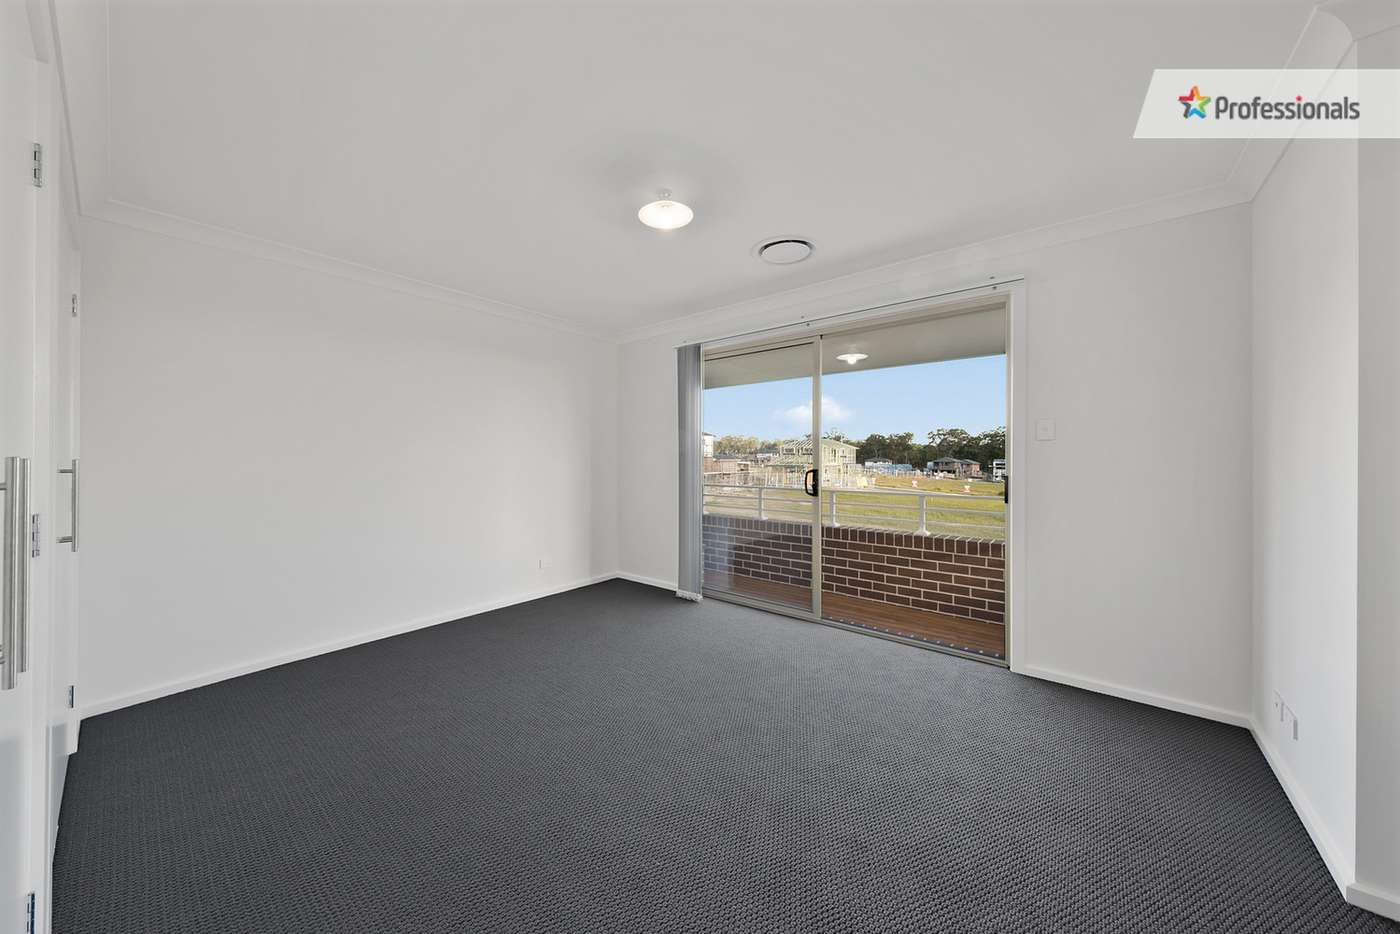 Fifth view of Homely house listing, 9 Panton Street, Rouse Hill NSW 2155